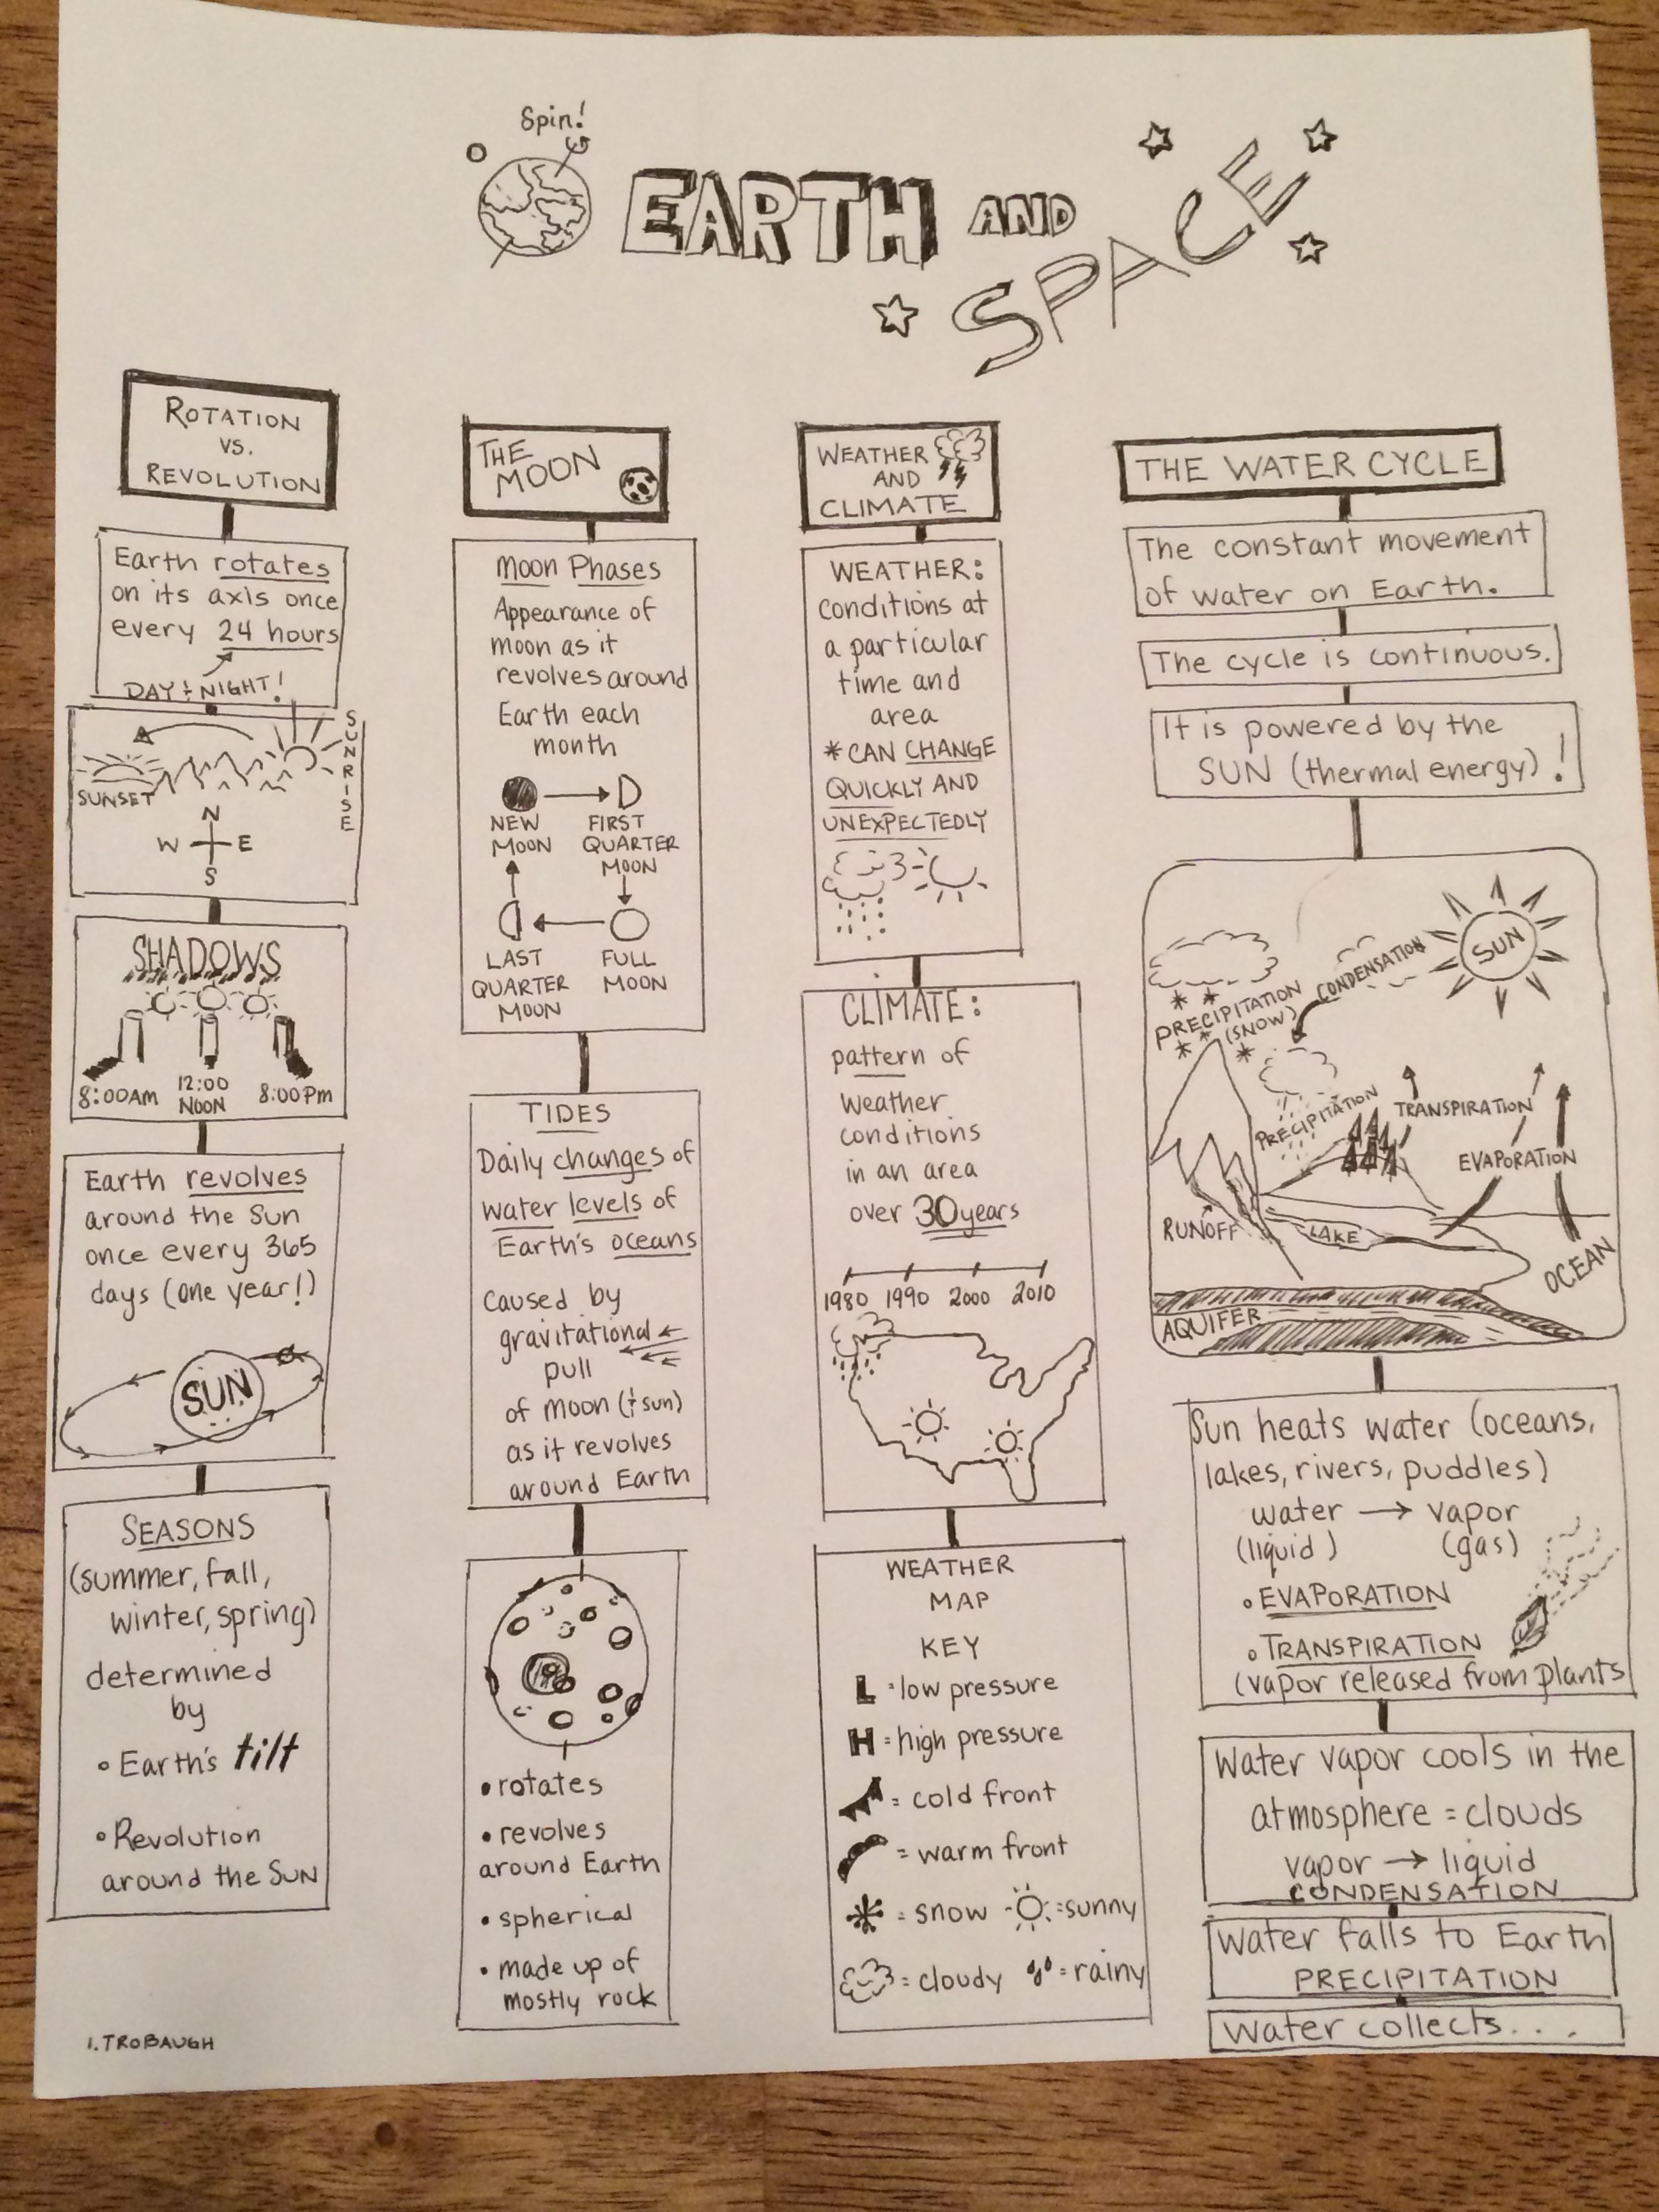 5th Grade Science Study Guide: Earth And Space- Rotation/Revolution, The  Moon, Weather and Climate, The Water Cycle